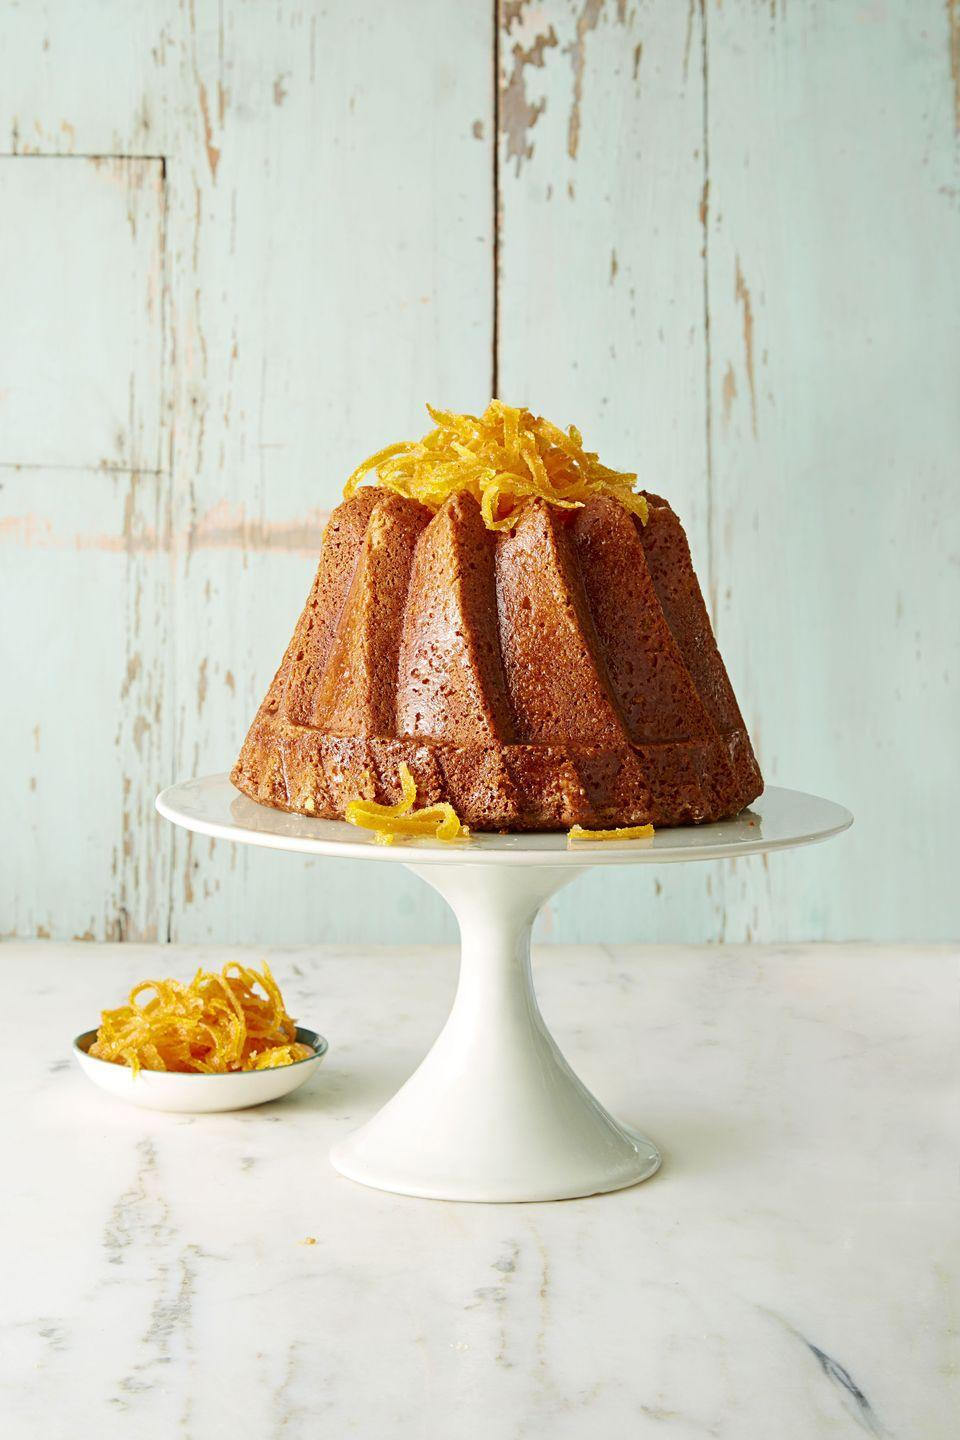 "<p>Spruce up this classic bundt with candied citrus peels.</p><p><a class=""link rapid-noclick-resp"" href=""https://www.amazon.com/Bakers-Secret-Basics-Nonstick-Fluted/dp/B00091PMSU?tag=syn-yahoo-20&ascsubtag=%5Bartid%7C10055.g.4249%5Bsrc%7Cyahoo-us"" rel=""nofollow noopener"" target=""_blank"" data-ylk=""slk:SHOP BUNDT PANS"">SHOP BUNDT PANS</a></p><p><em><a href=""https://www.goodhousekeeping.com/food-recipes/dessert/a38286/triple-citrus-bundt-recipe/"" rel=""nofollow noopener"" target=""_blank"" data-ylk=""slk:Get the recipe for Triple Citrus Bundt »"" class=""link rapid-noclick-resp"">Get the recipe for Triple Citrus Bundt »</a></em><br></p>"